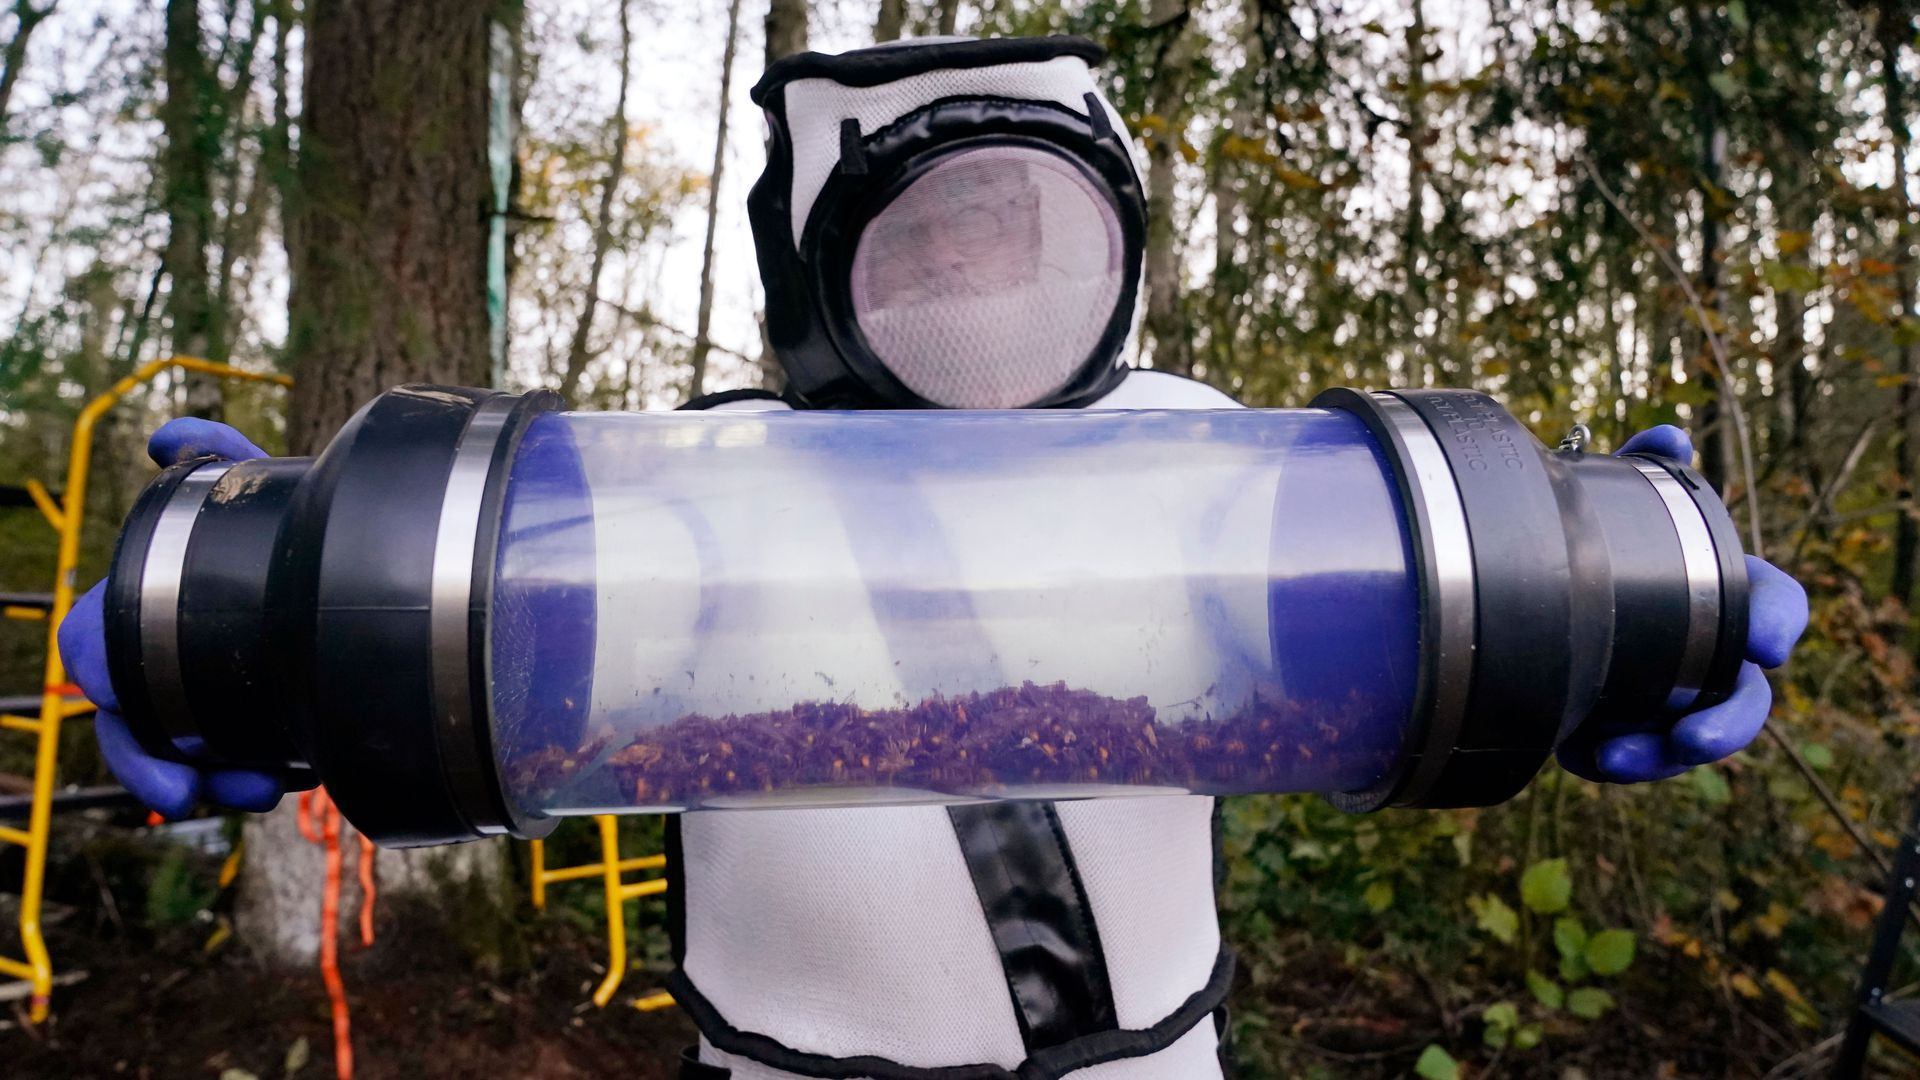 A scientist displays a canister of Asian giant hornets vacuumed from a nest in a tree behind him on October 24, 2020, in Blaine, Washington.